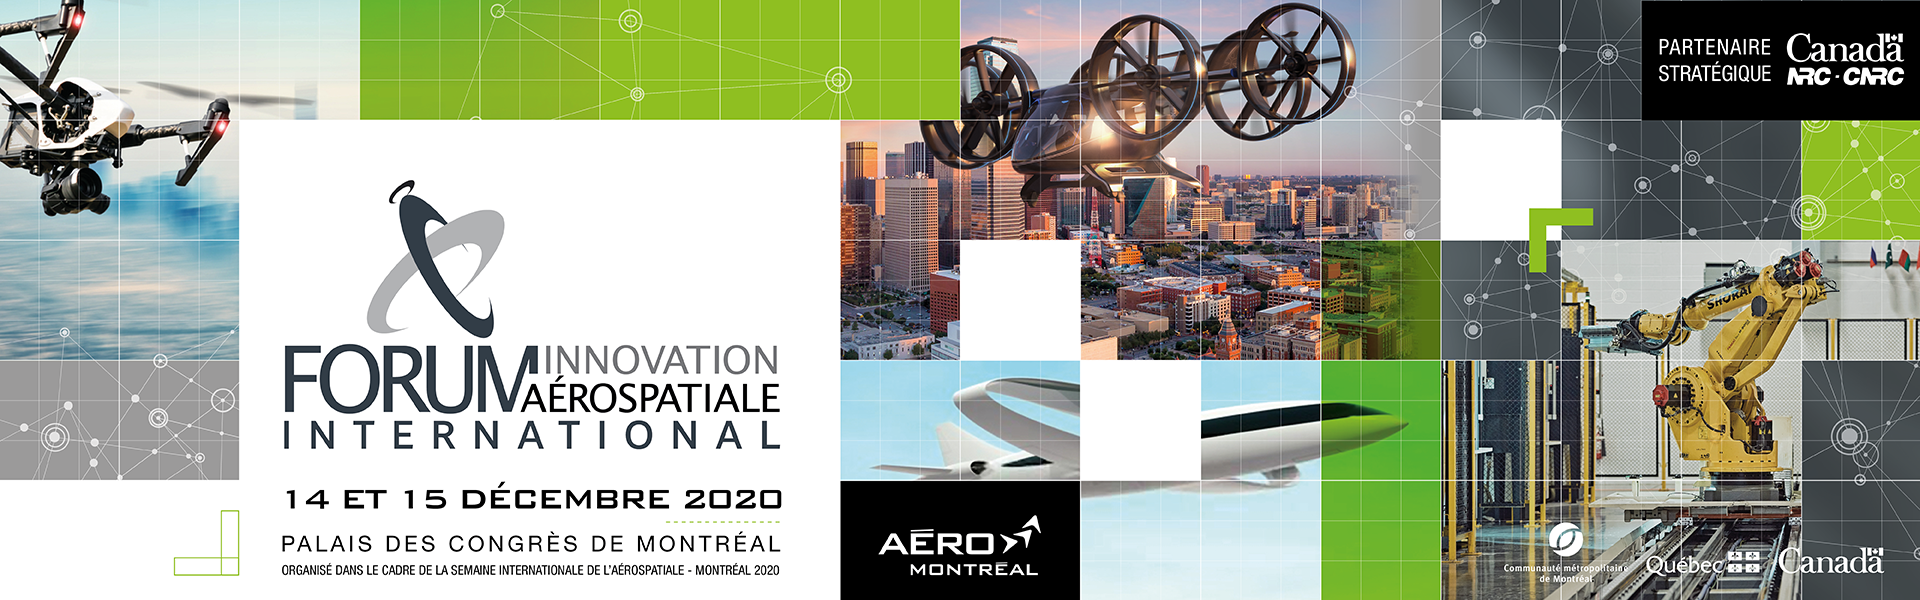 Forum innovation aérospatiale international 2020